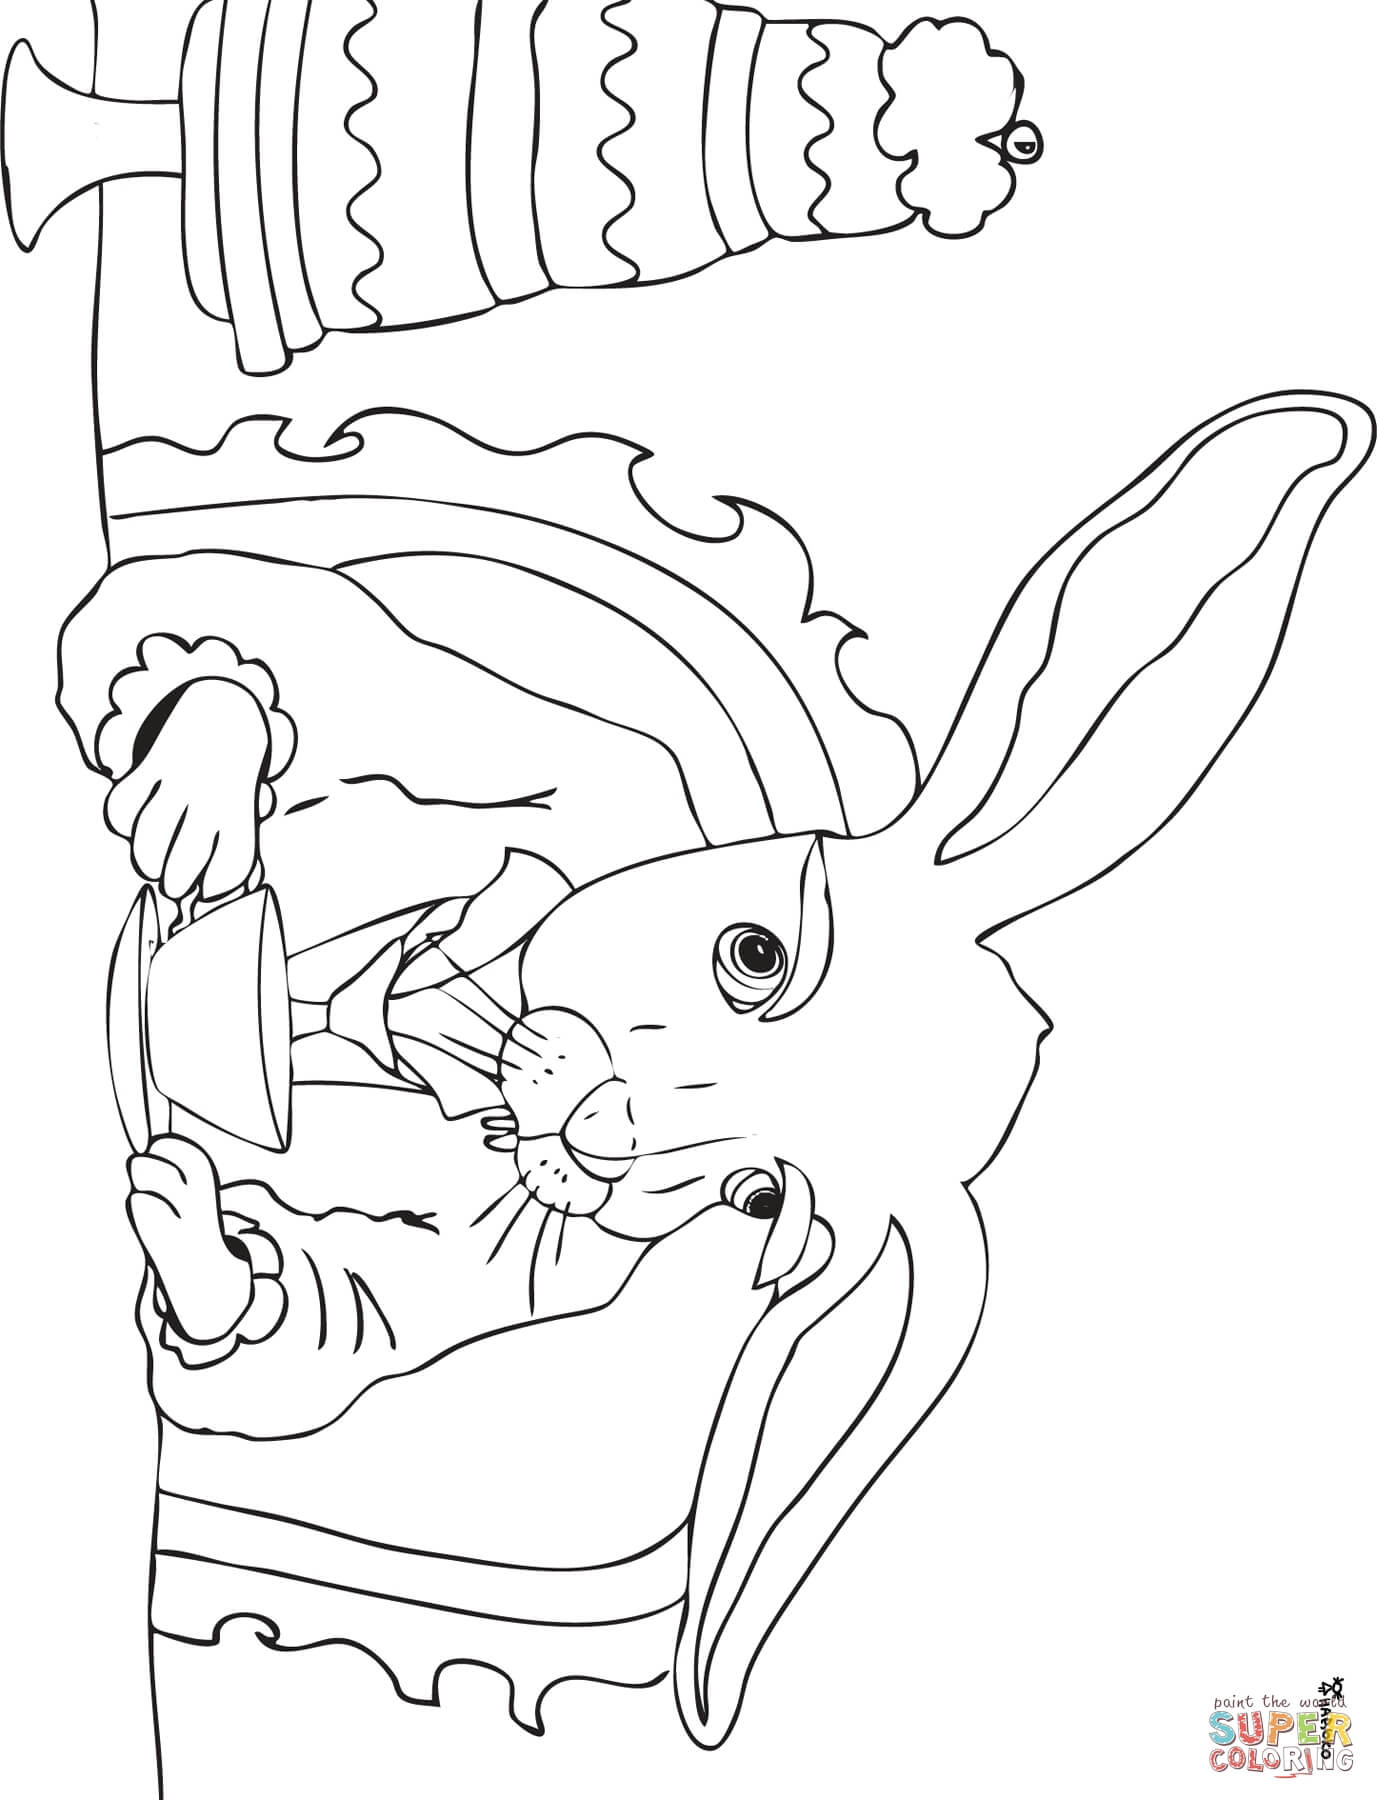 1377x1800 The Mad March Hare Coloring Page Free Printable Coloring Pages